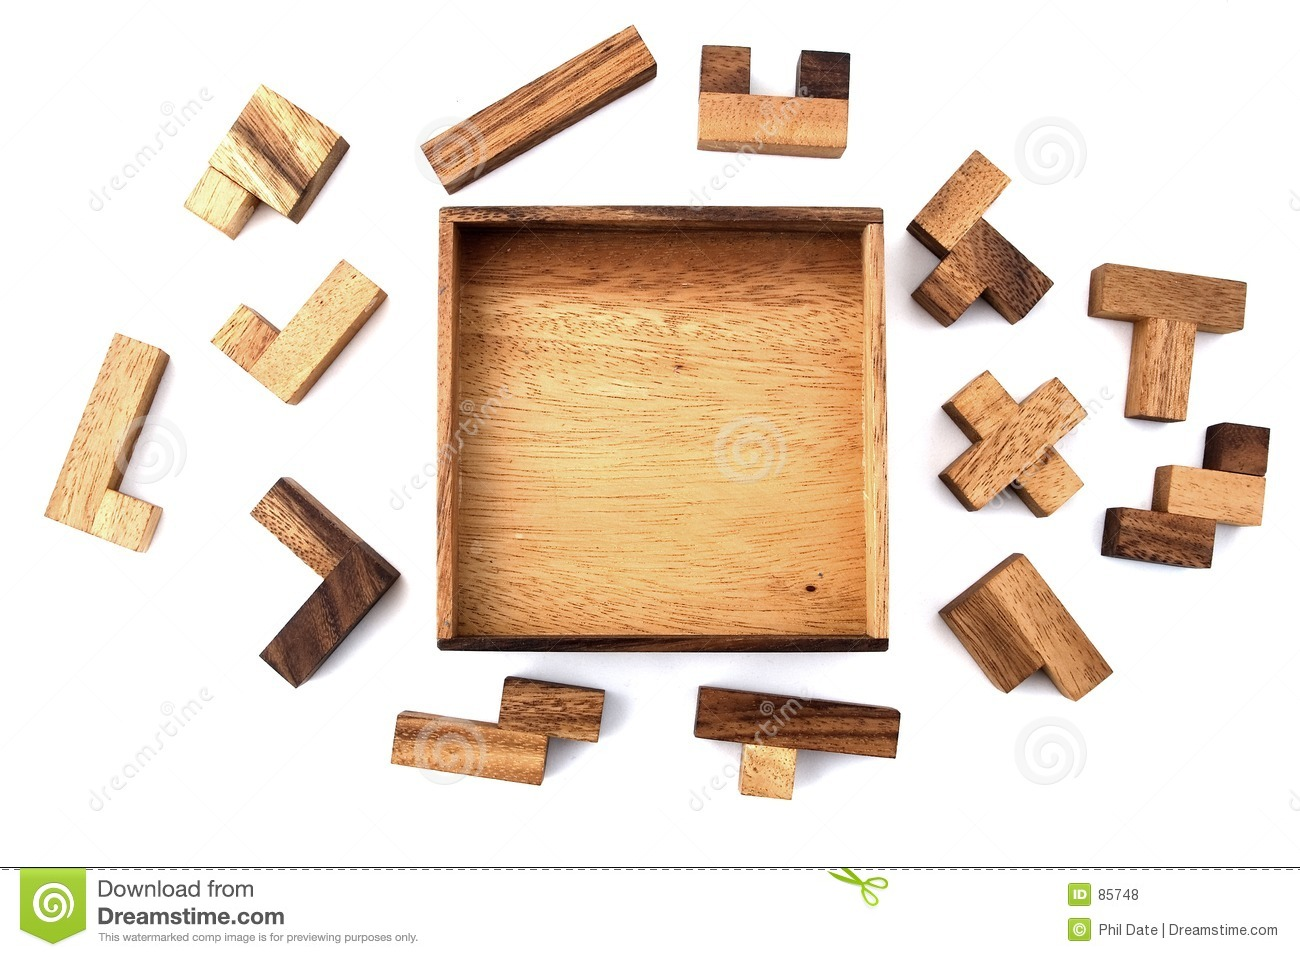 Wooden Puzzle Royalty Free Stock Photos   Image  85748